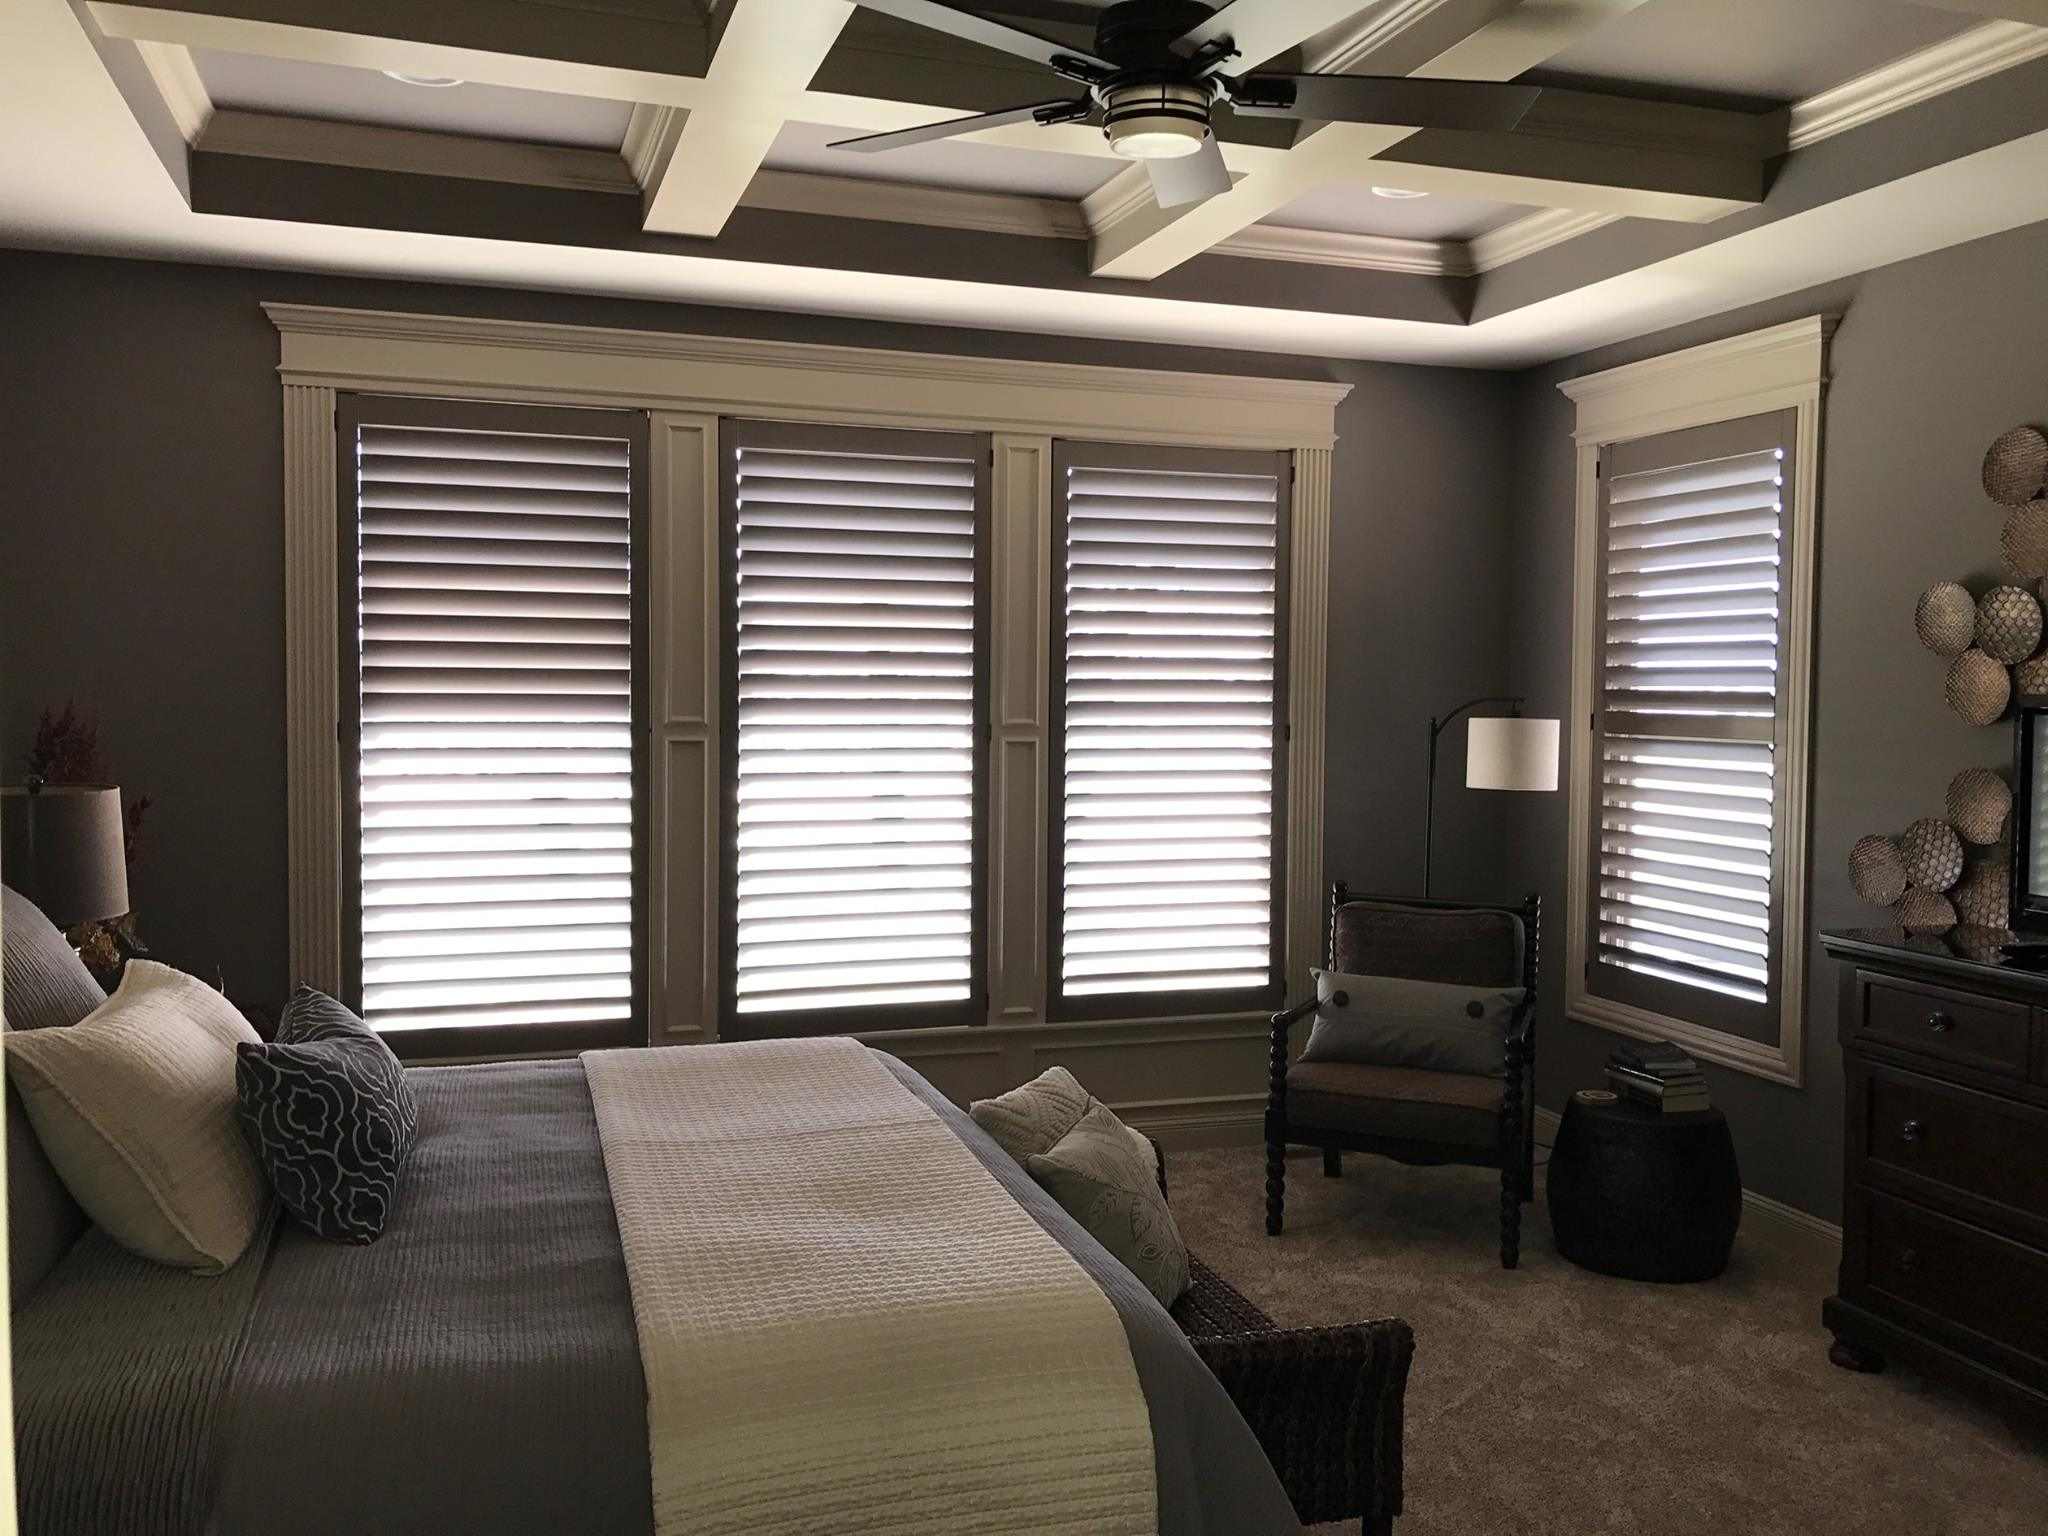 non basic refundable shutters shades blinds for day and installation cost deposit